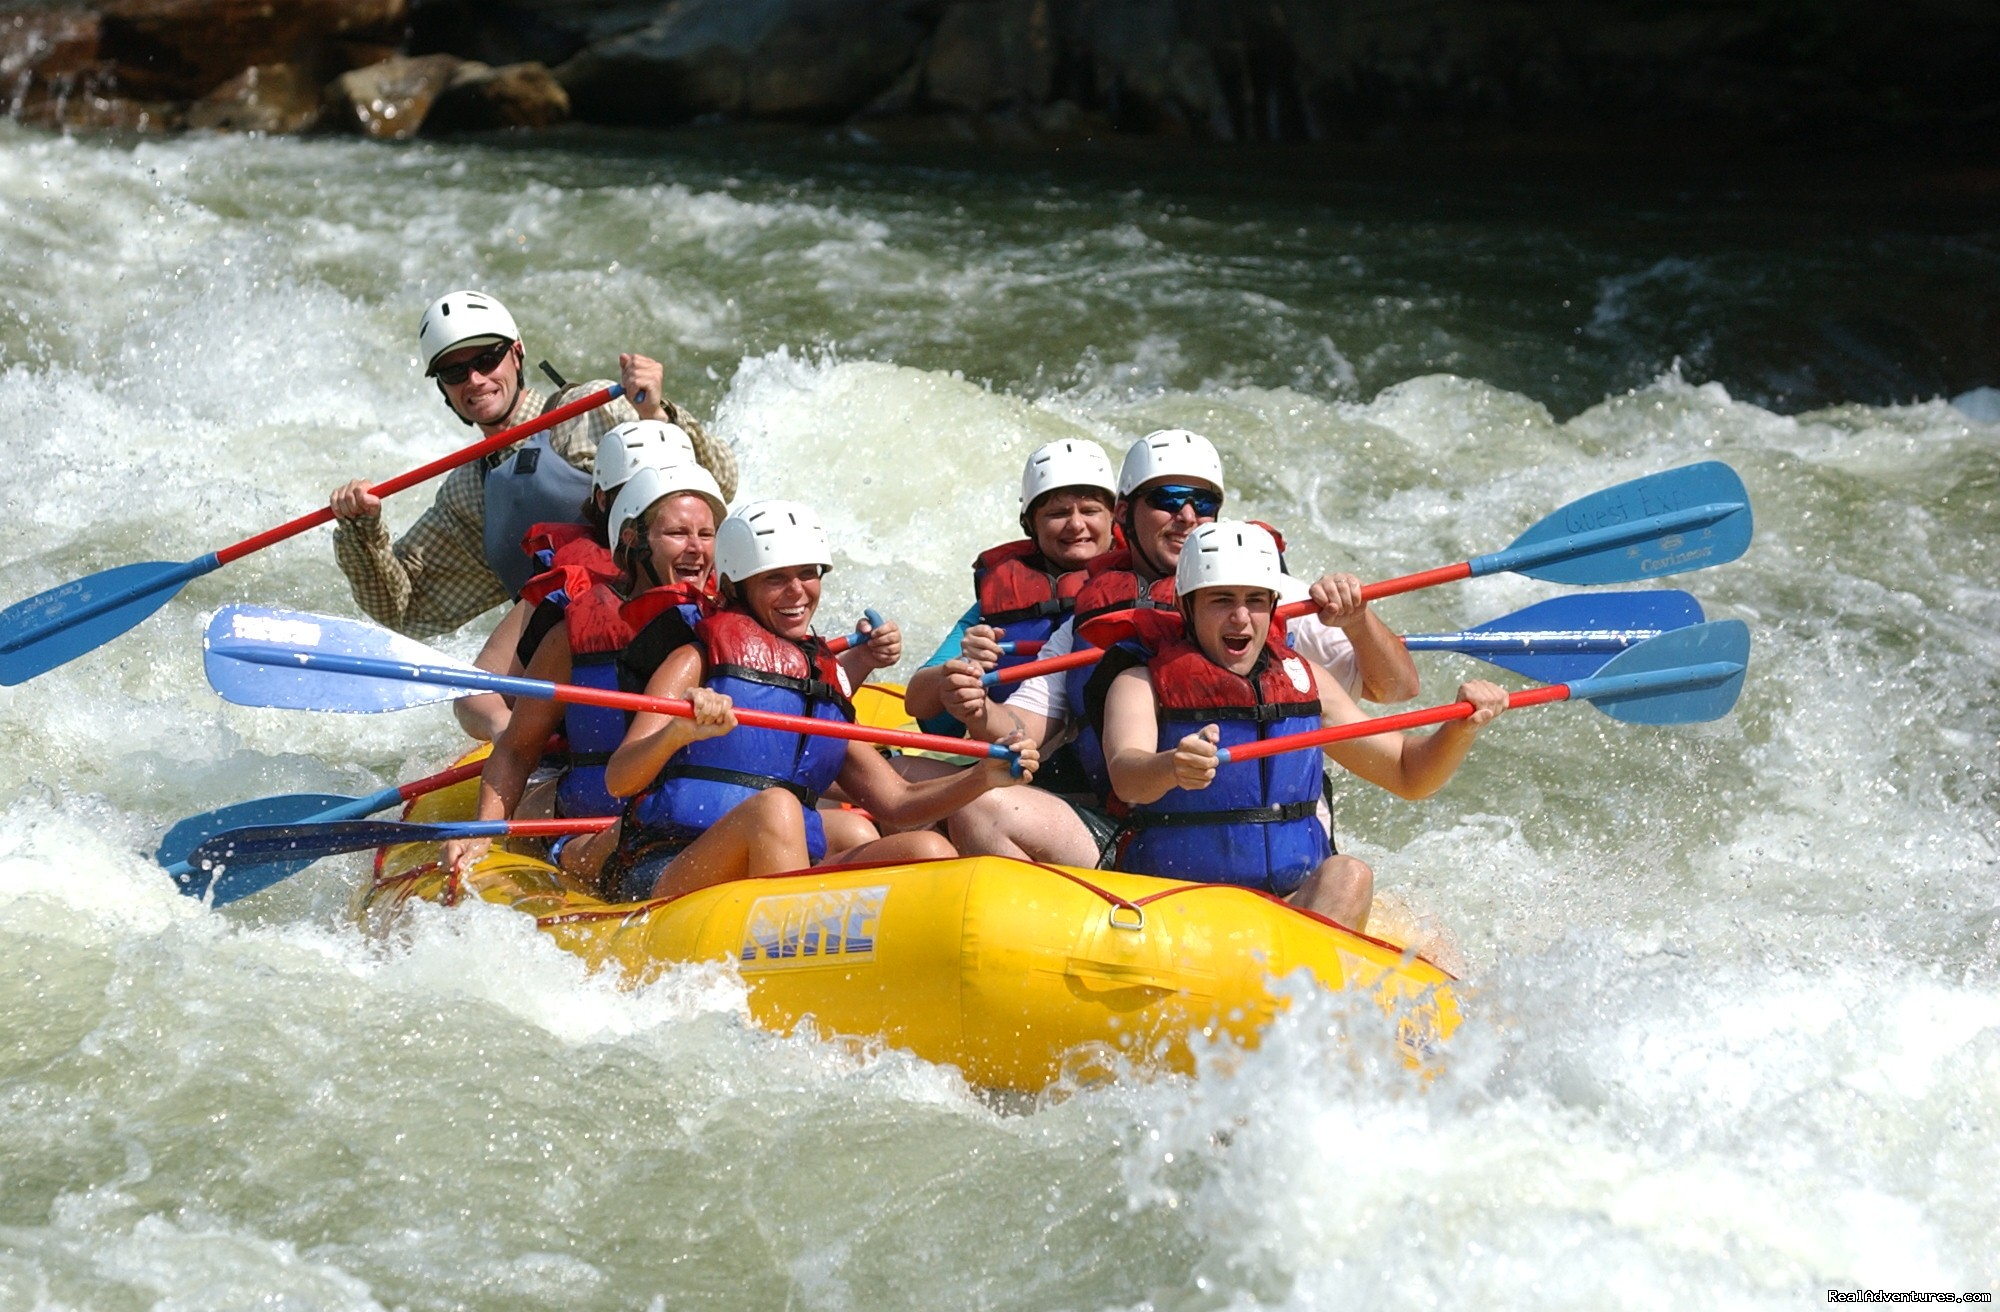 Tablesaw, Ocoee River | Image #11/16 | Premium half and full day Ocoee rafting adventures